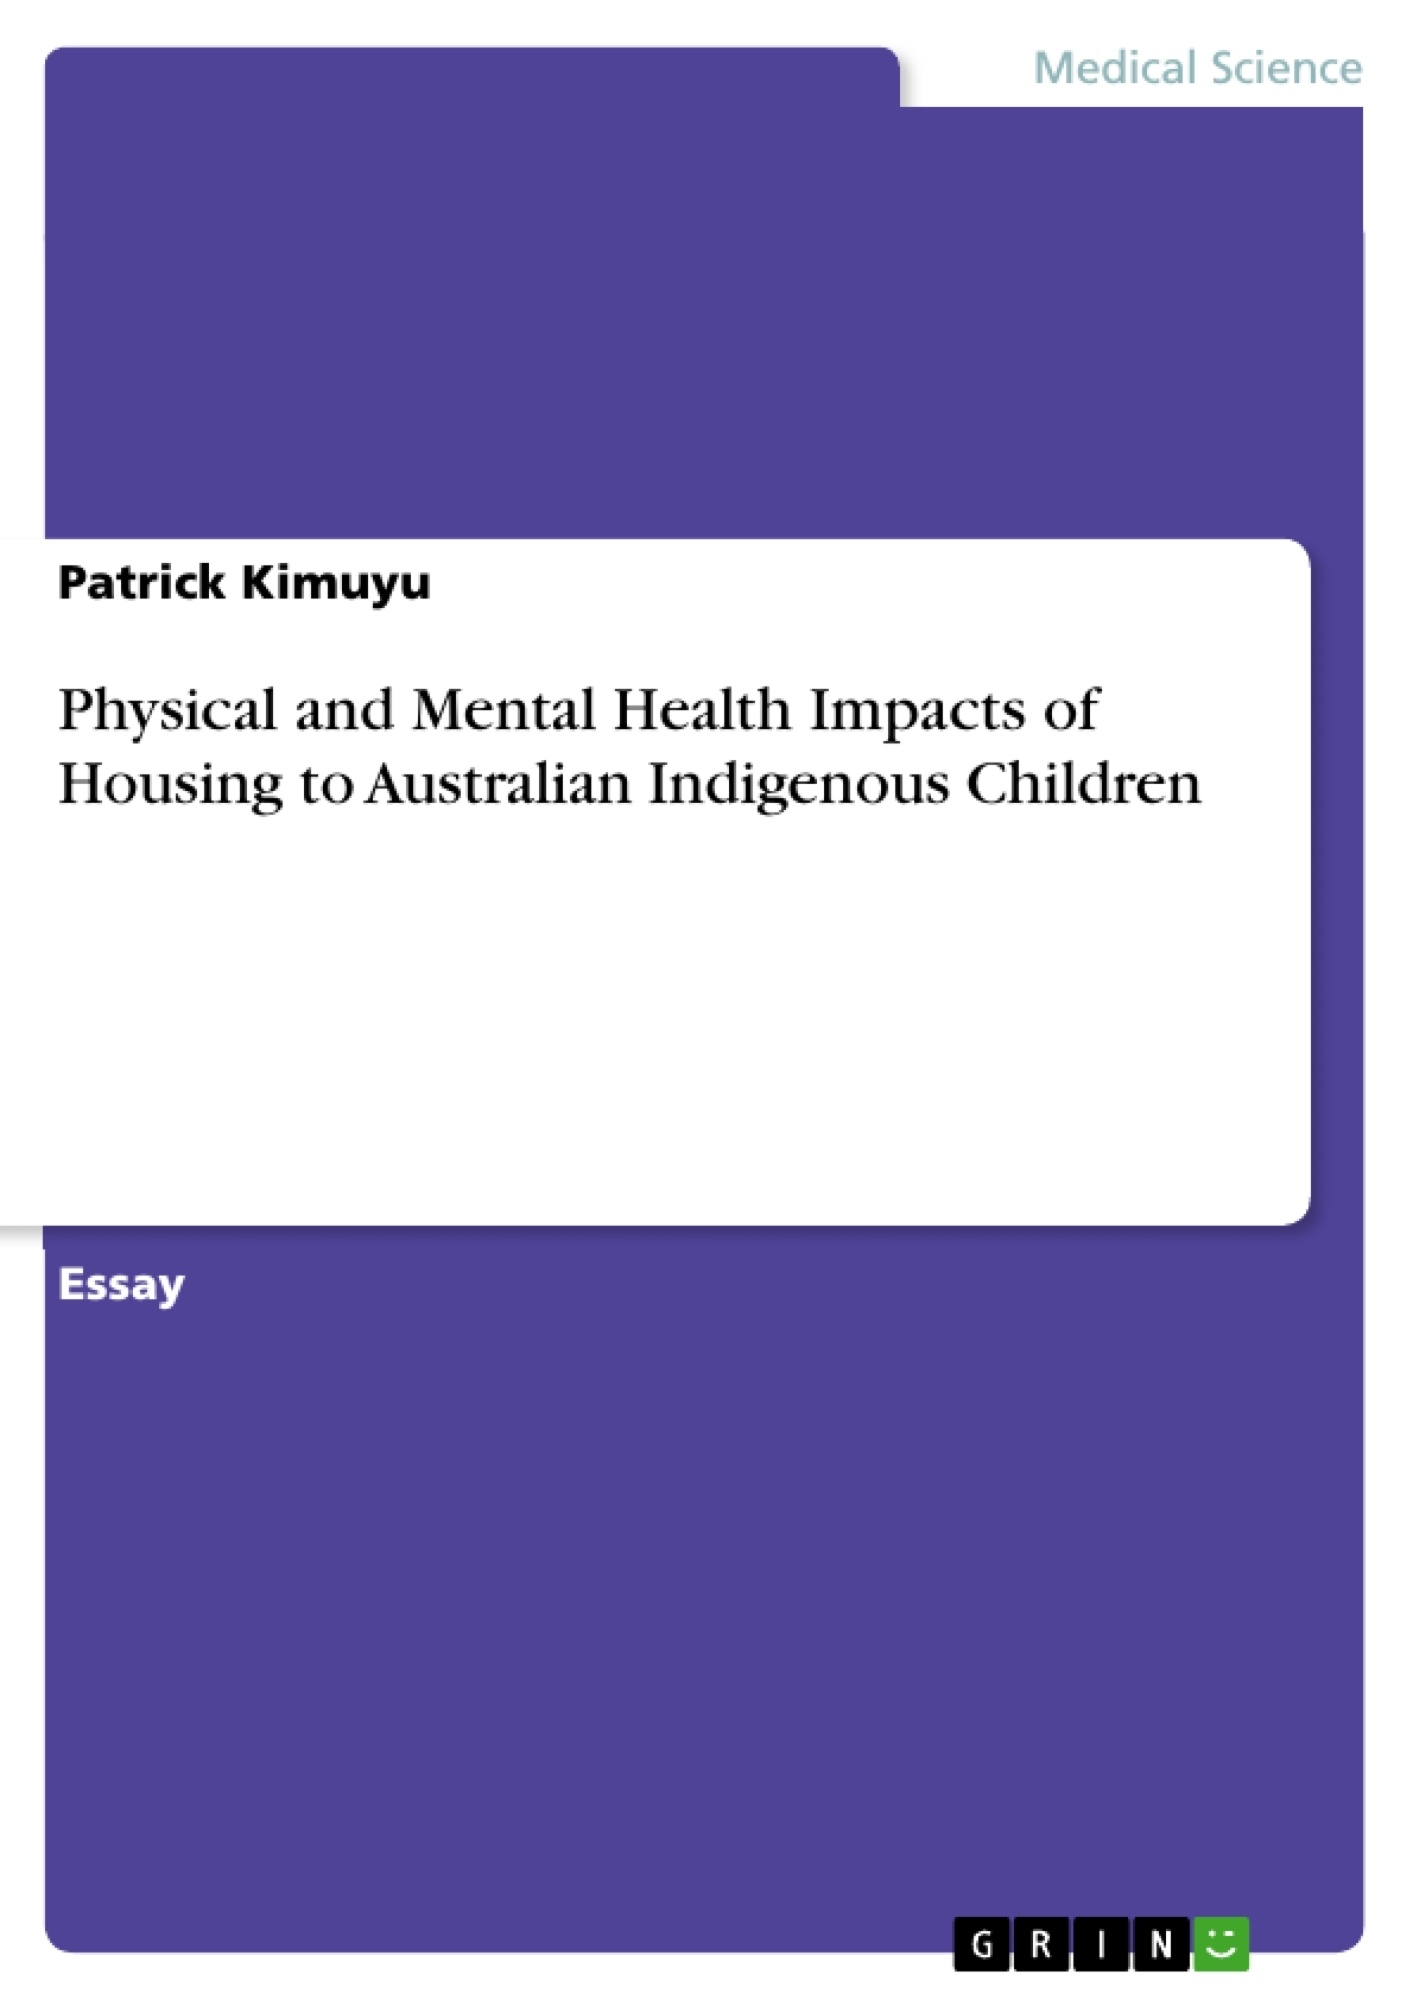 Title: Physical and Mental Health Impacts of Housing to Australian Indigenous Children